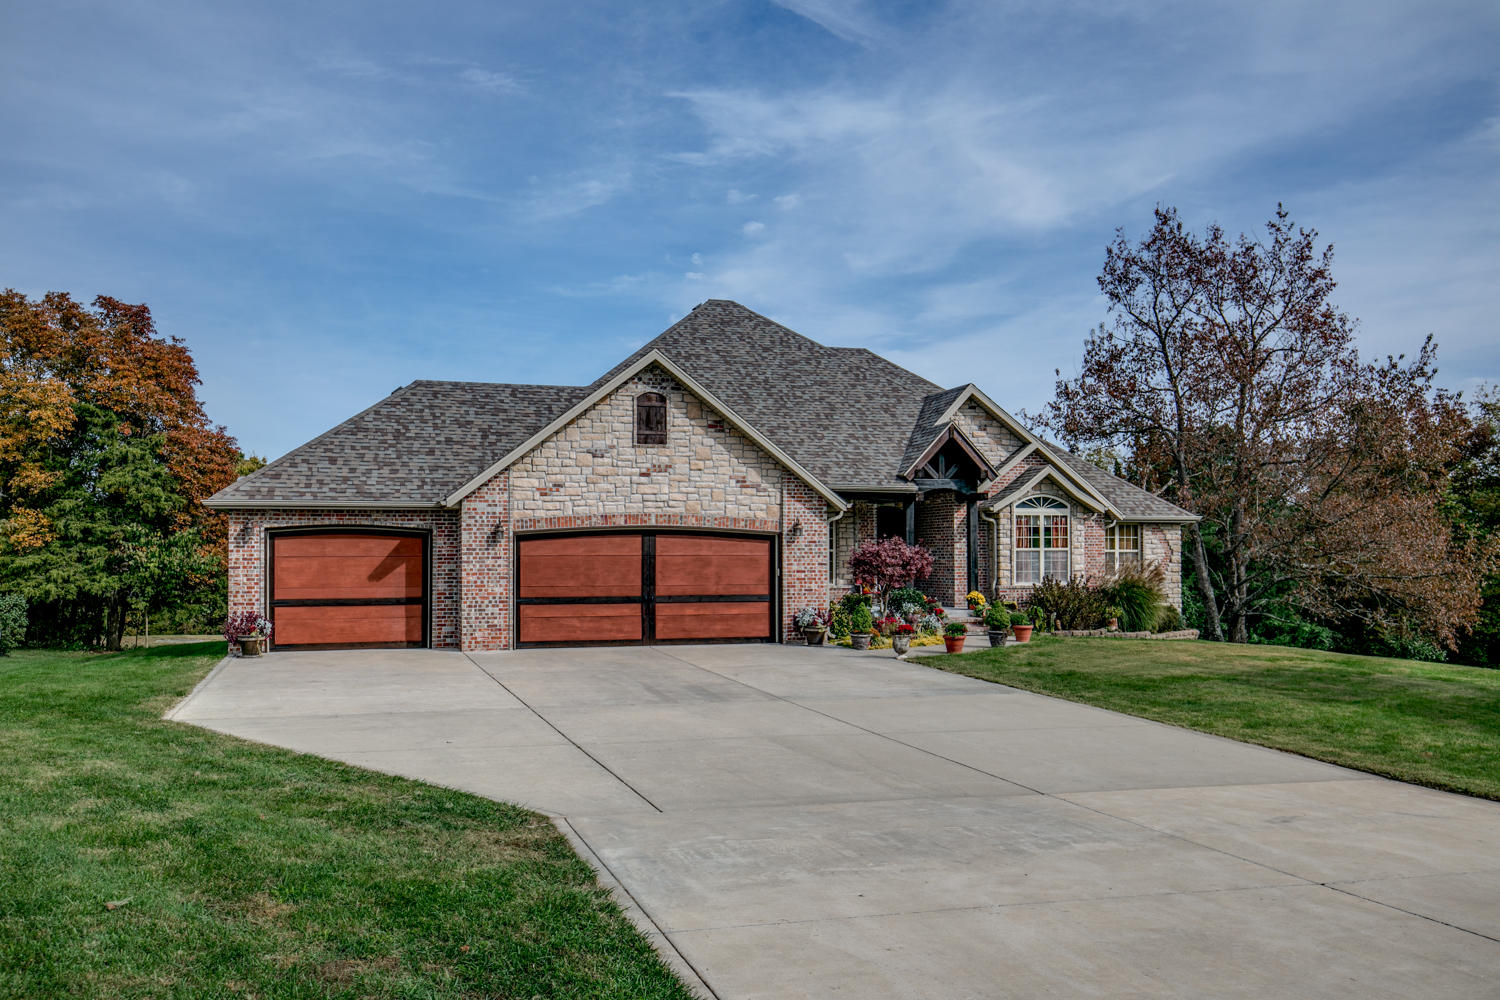 2004 South Hillock Court Ozark, MO 65721